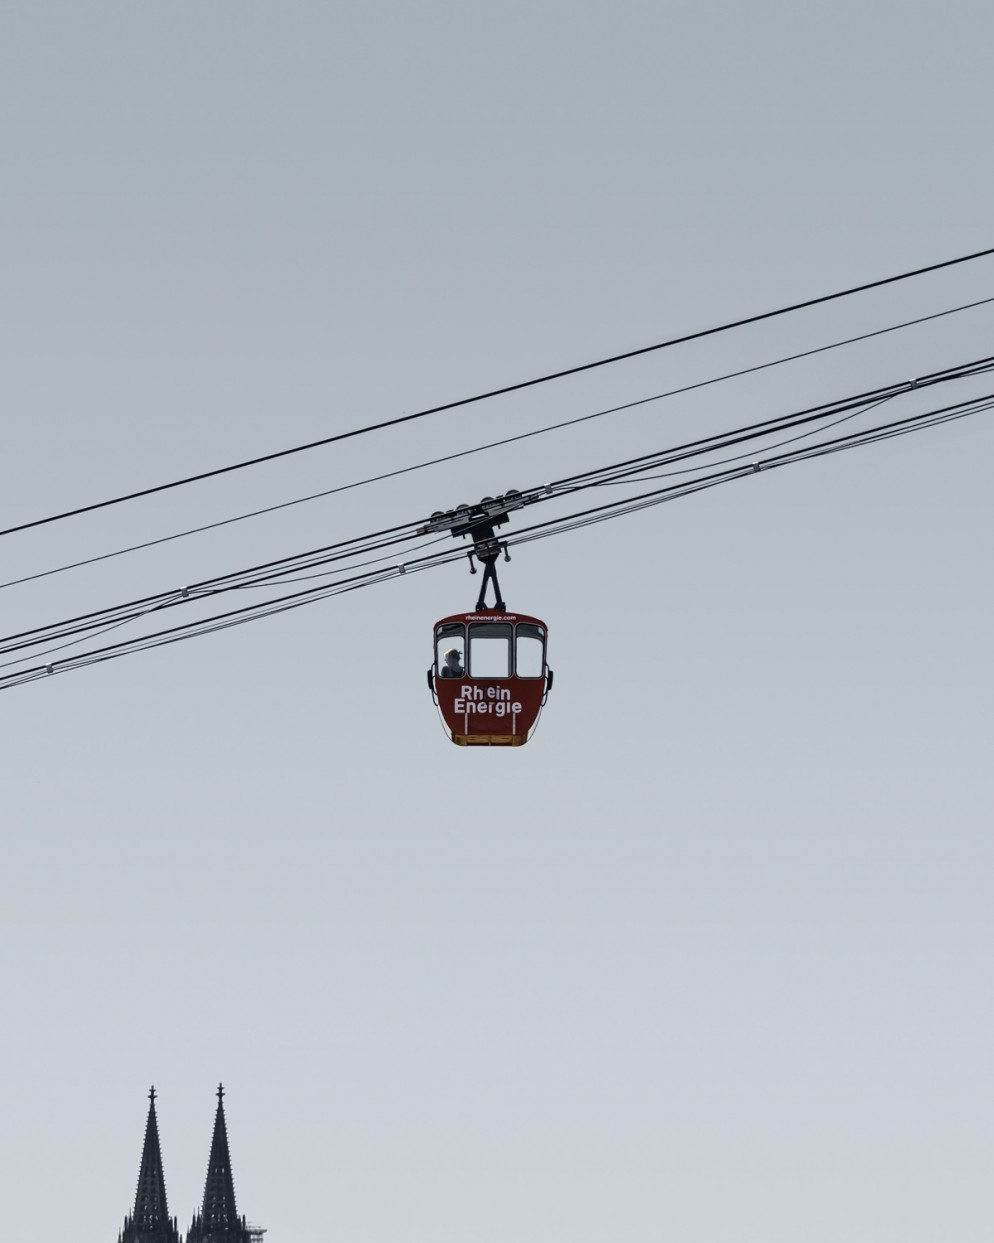 accidentally-wes-anderson-libro-007-cable-car-cathedral-germany-@olle.l.olleliving-corriere